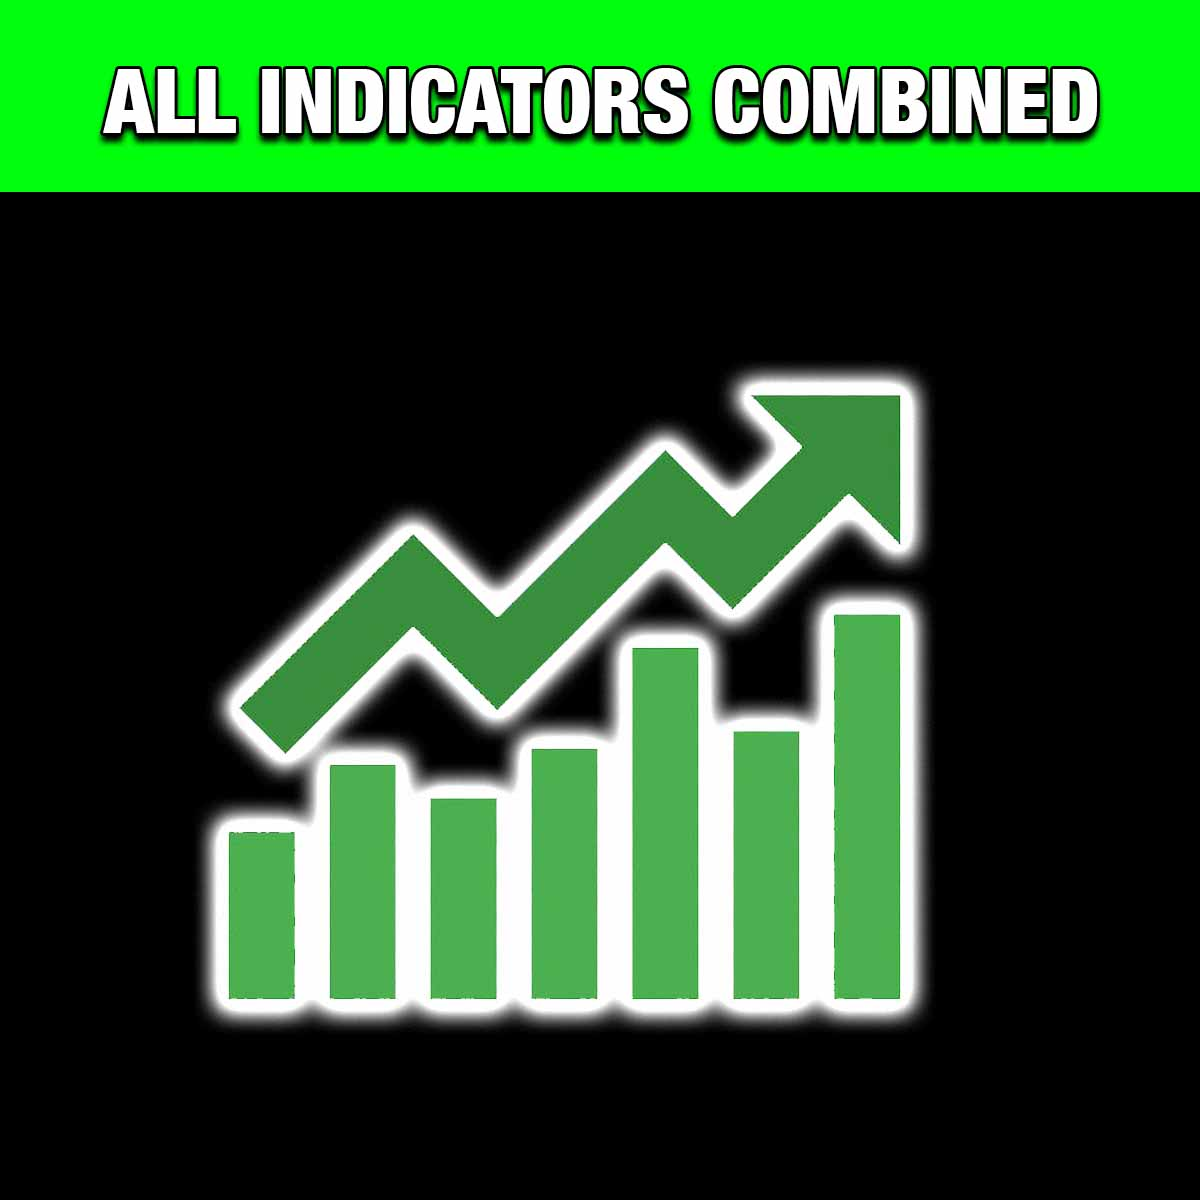 All trading Indicators combined